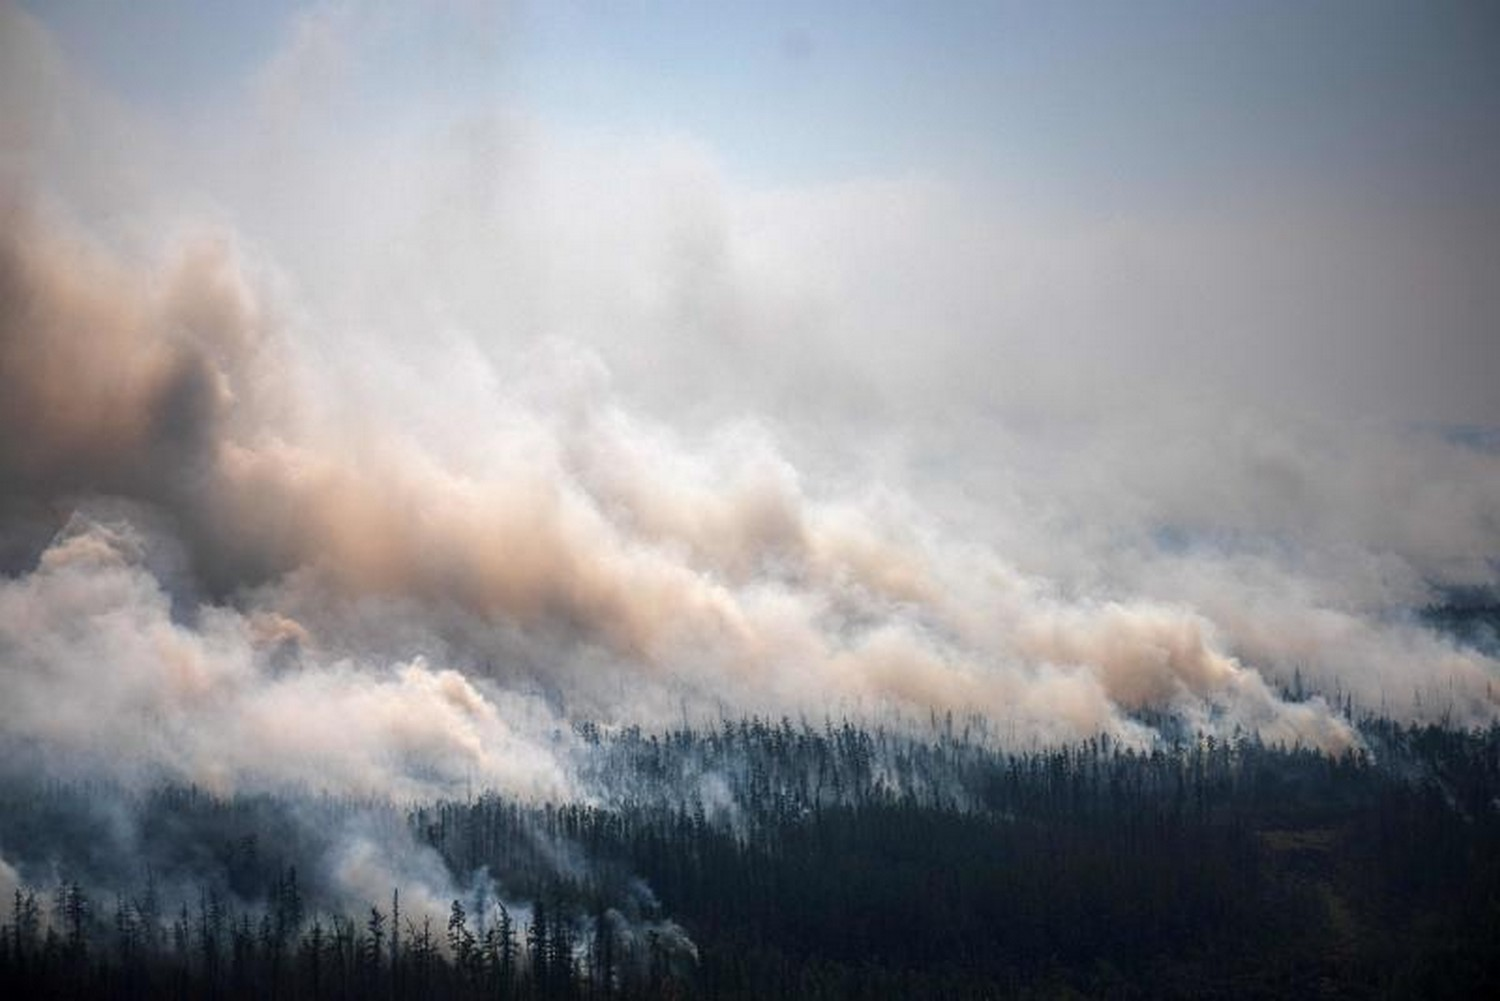 Smoke rises from a huge forest fire outside the village of Berdigestyakh, in the republic of Sakha, in Siberia, on July 27. According to many scientists, Russia - especially its Siberian and Arctic regions - is among the countries most exposed to climate change. The country has set numerous records in recent years and in June 2020 registered 38C in the town of Verkhoyansk, the highest temperature recorded above the Arctic circle since measurements began. (Photo: Dimitar Dilkoff/ AFP)